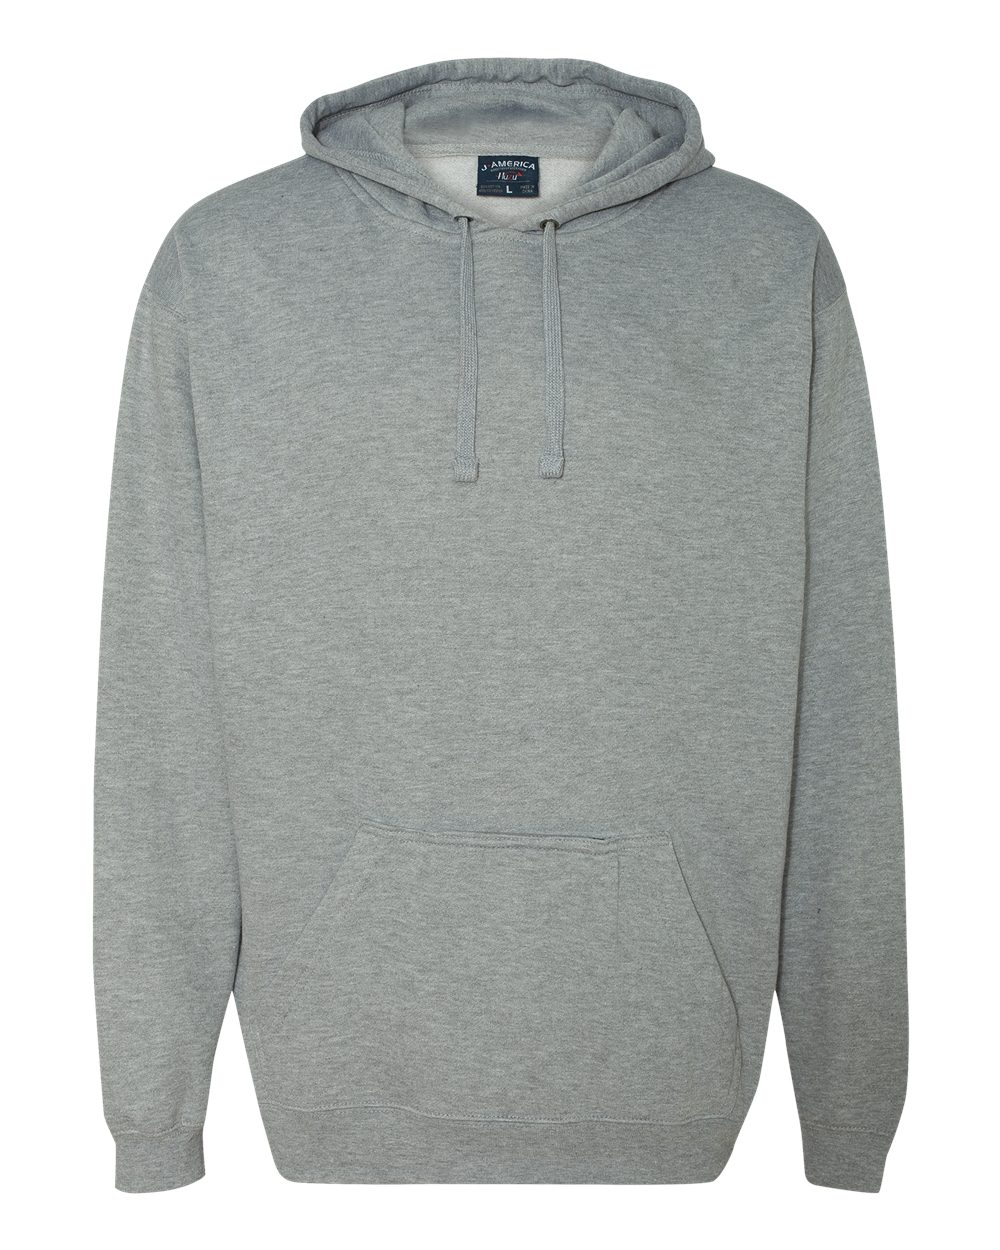 J-America-Tailgate-Hooded-Sweatshirt-with-beverage-holder-Pocket-8815-up-to-3XL thumbnail 12